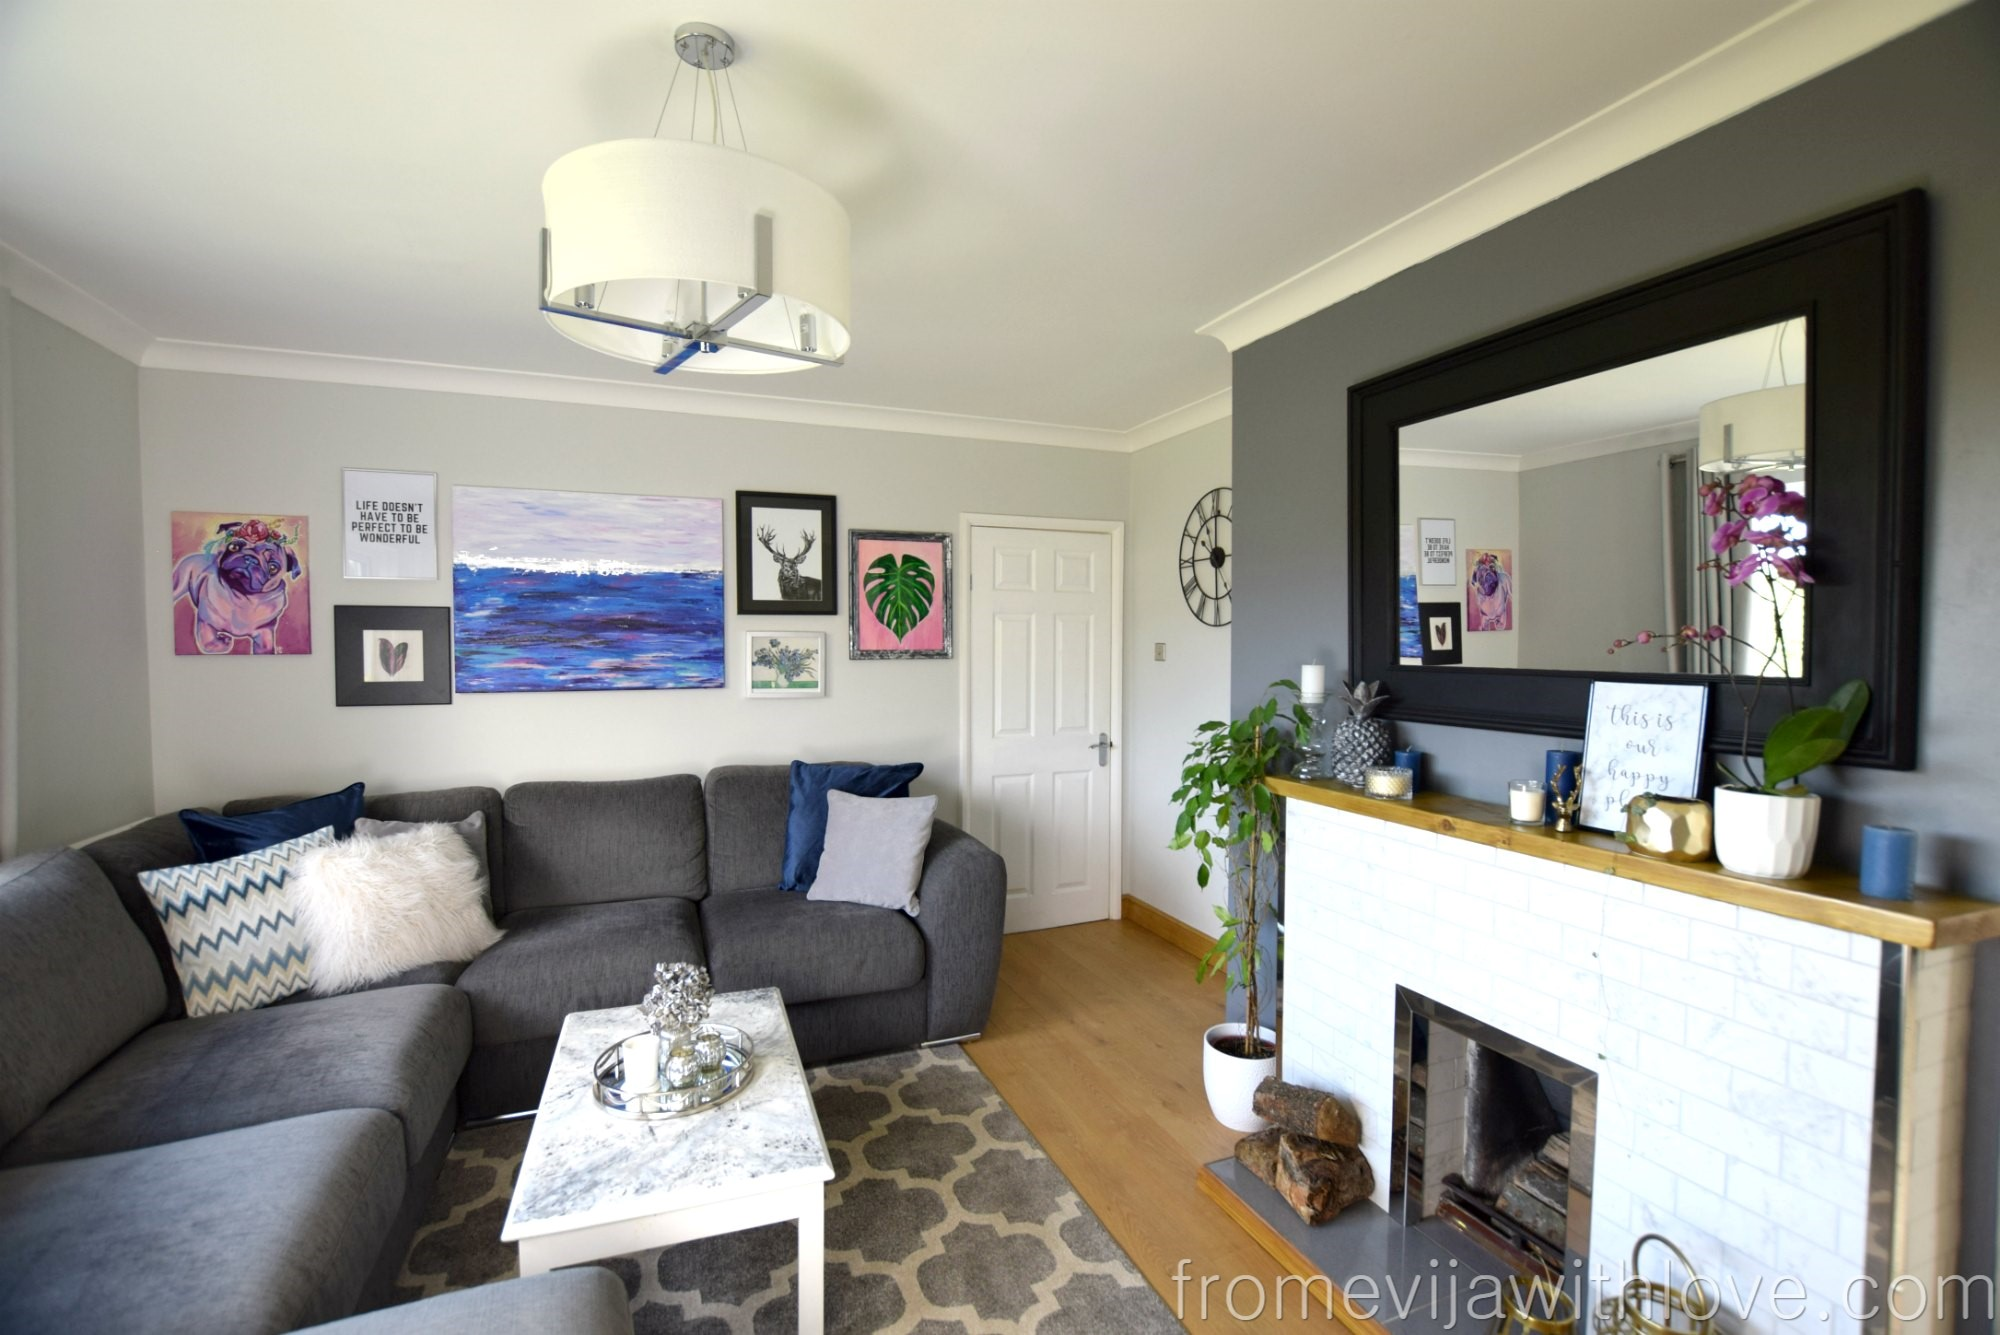 Living Room Makeover on a Budget - From \